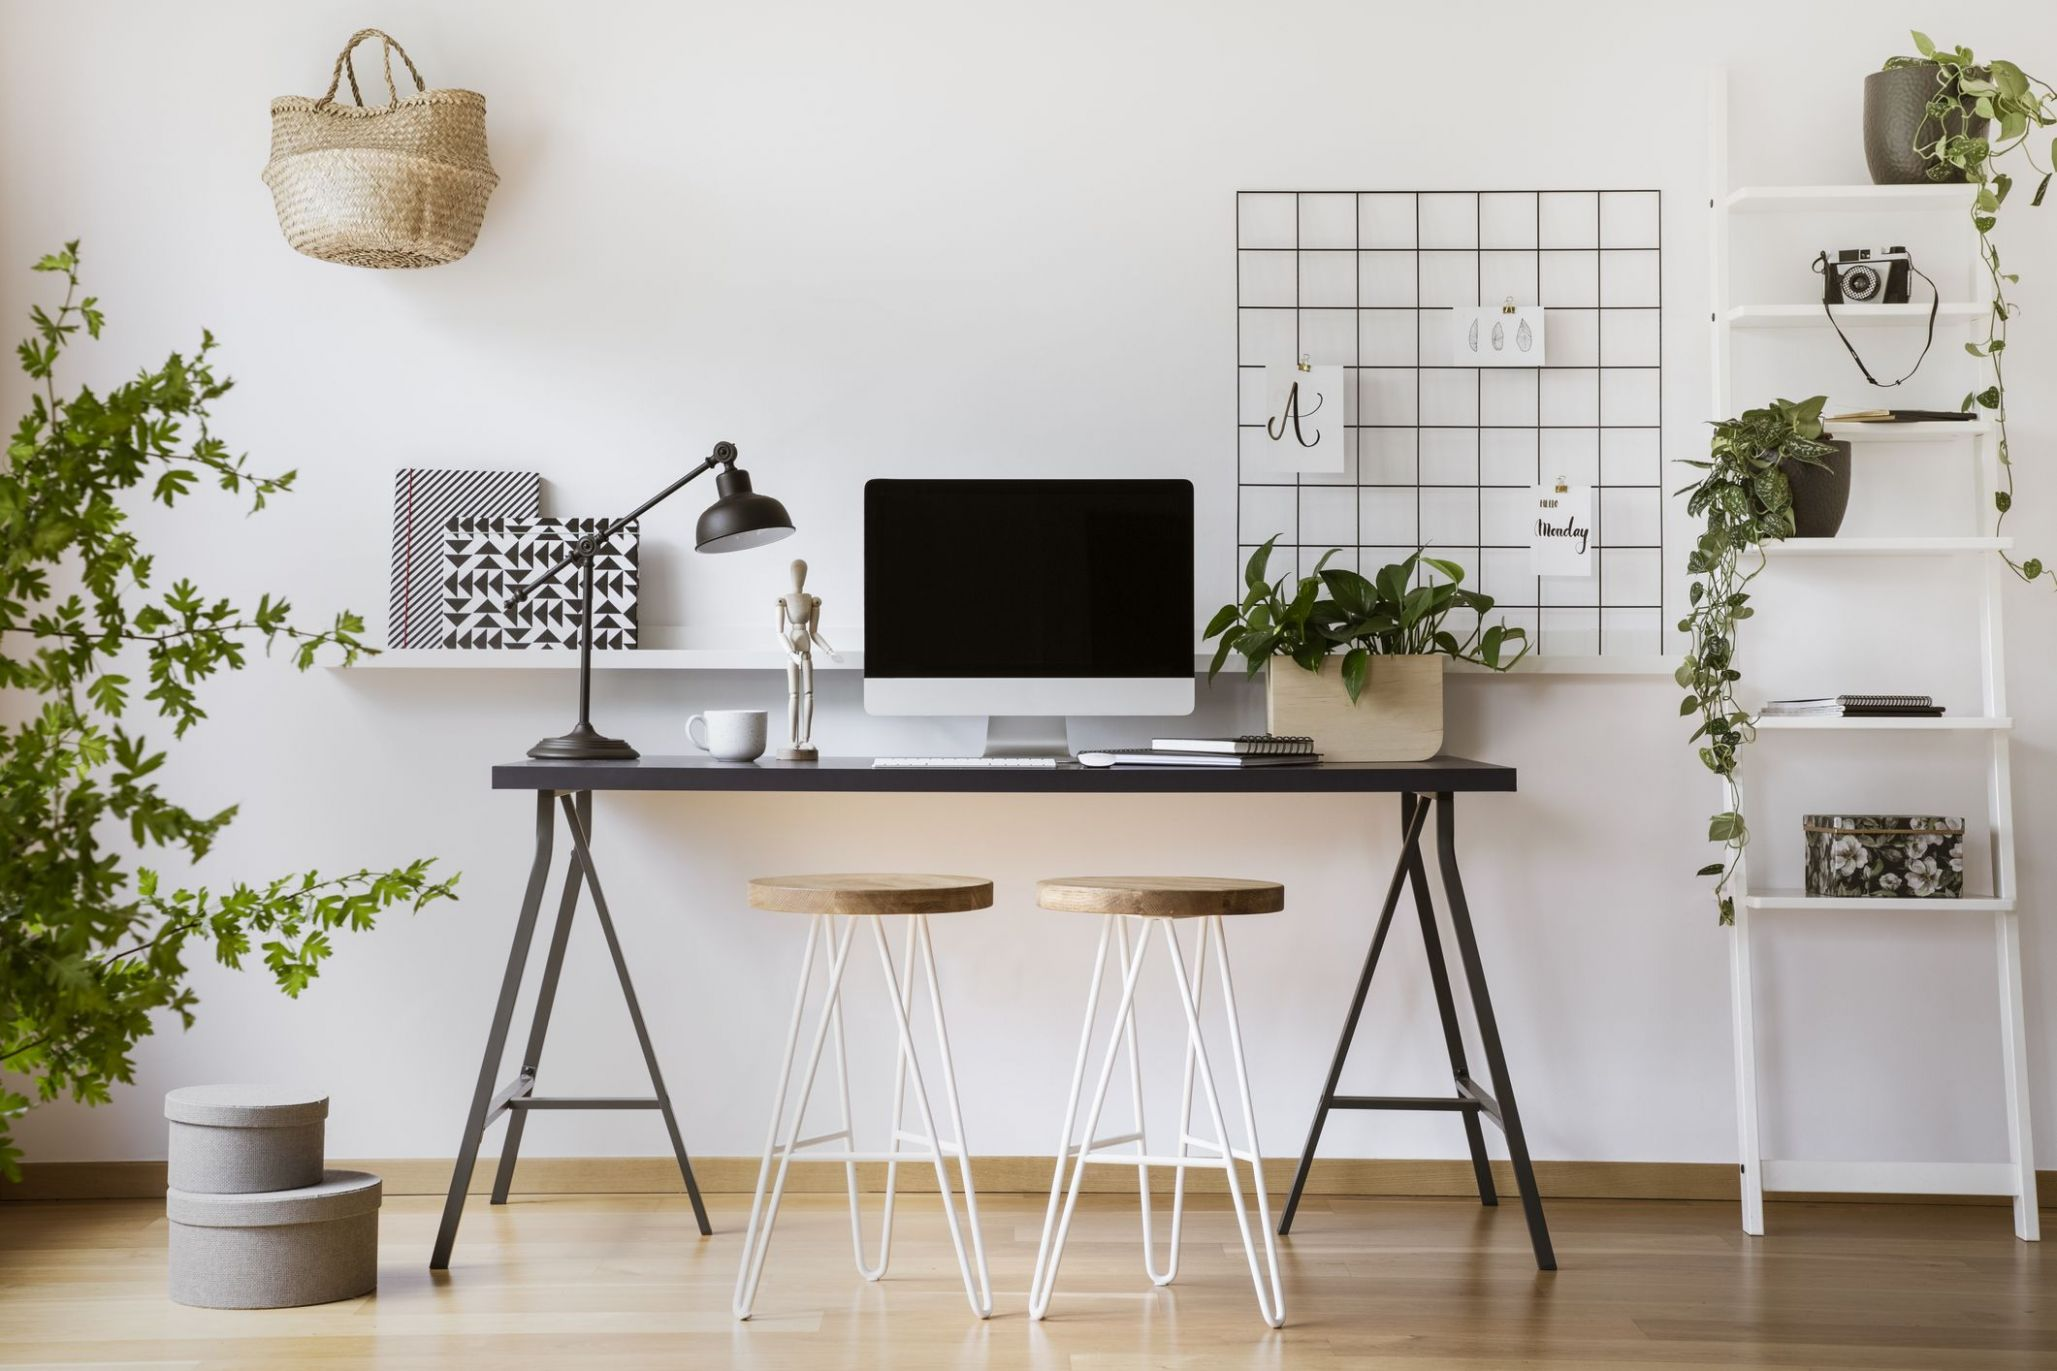 9 DIY Home Office Decor Ideas - Best Home Office Decor Projects